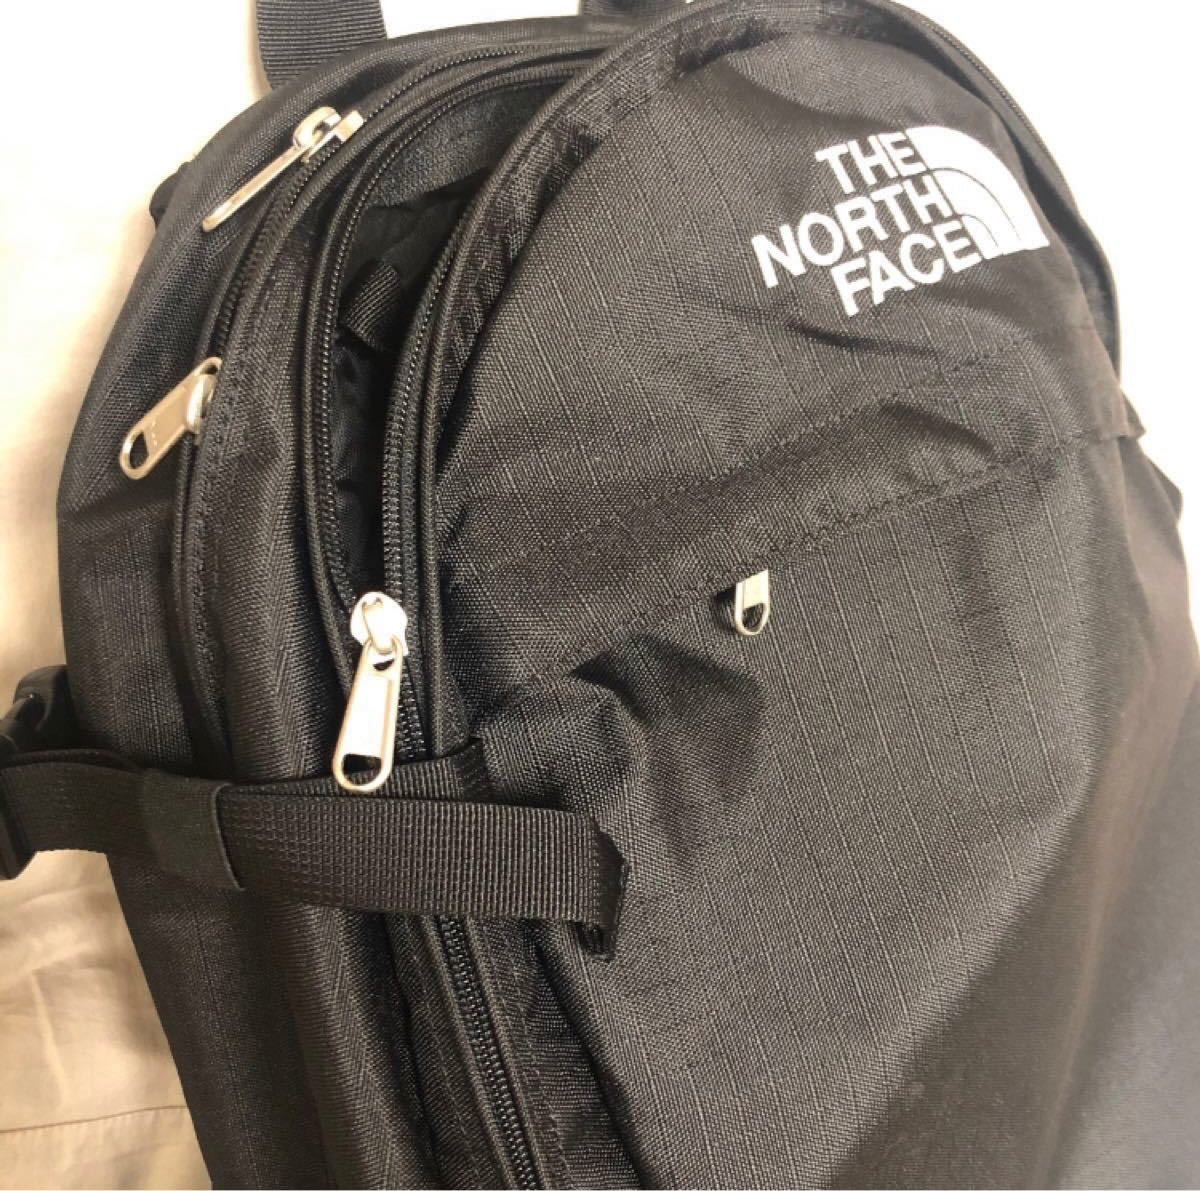 THE NORTH FACE / リュック・バックパック /30L